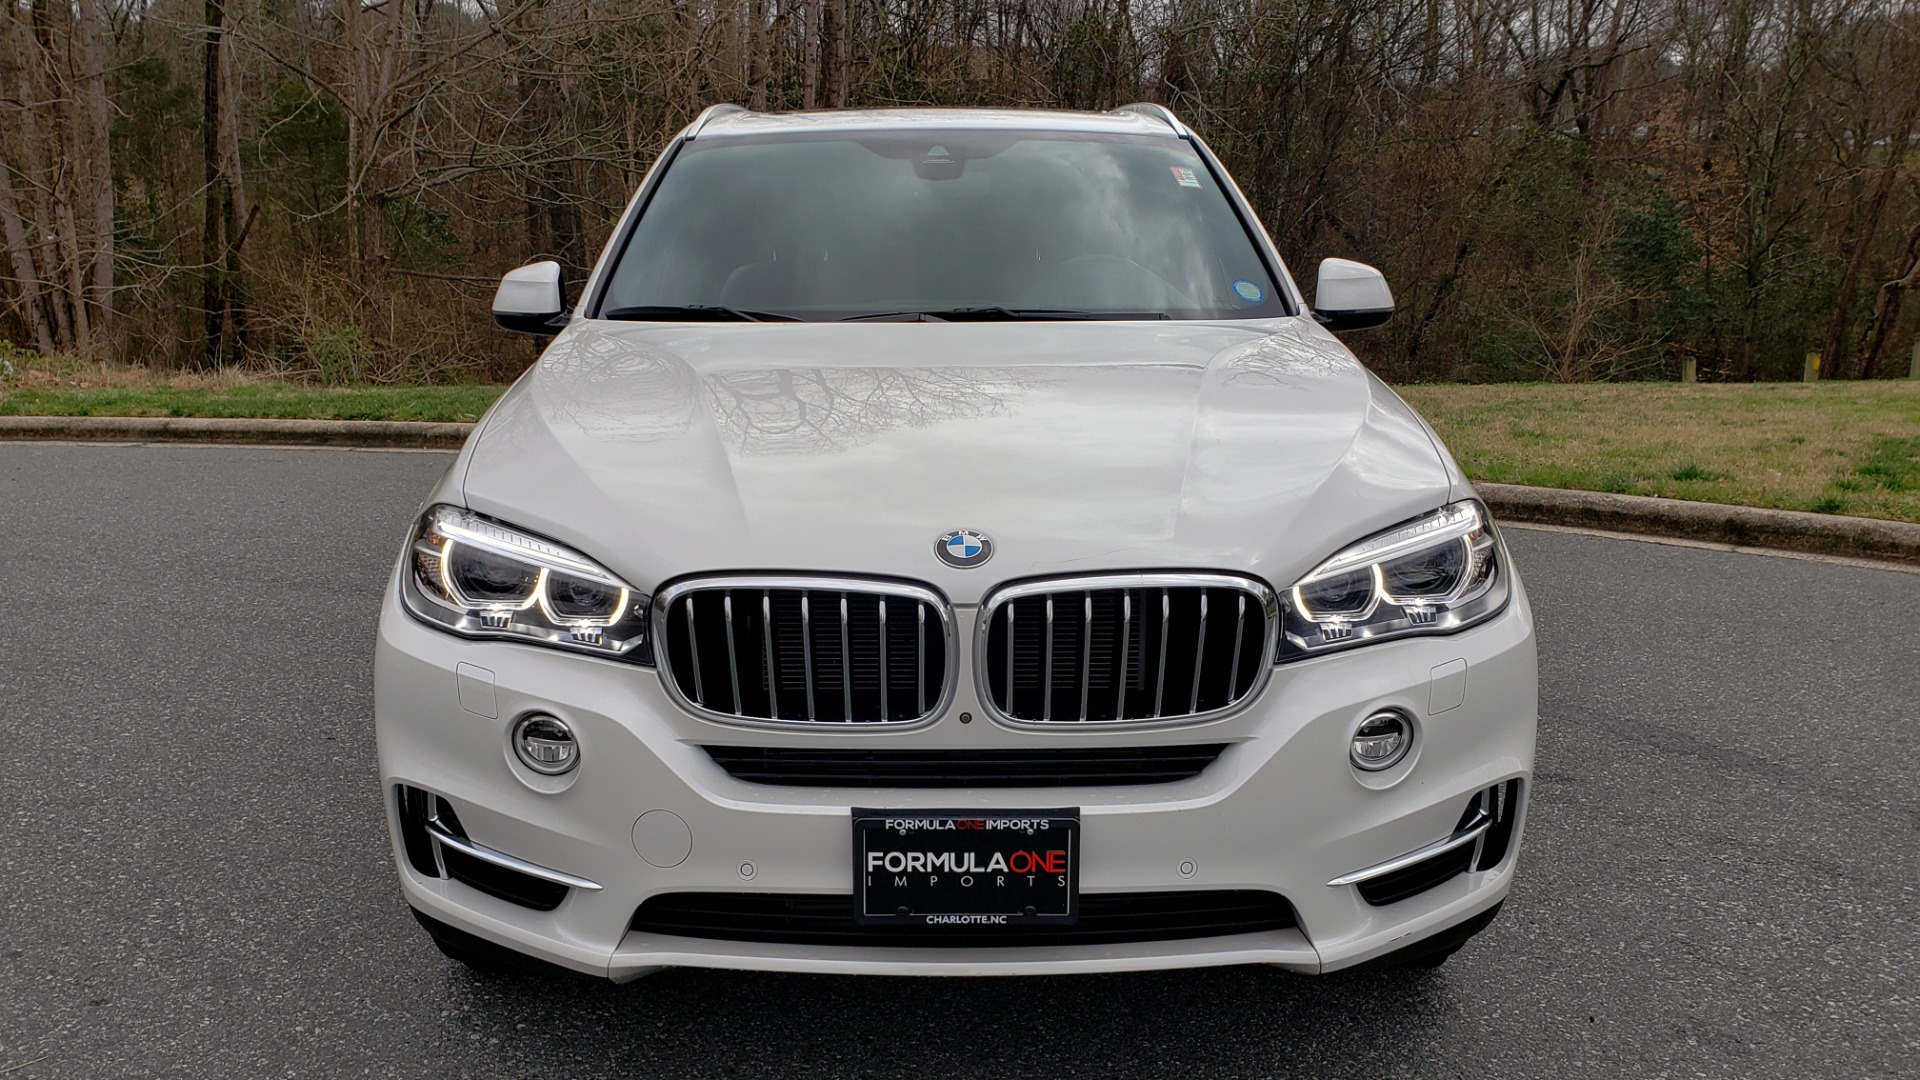 Used 2017 BMW X5 XDRIVE35I / NAV / HUD / DRVR ASST / SUNROOF / REARVIEW for sale Sold at Formula Imports in Charlotte NC 28227 22